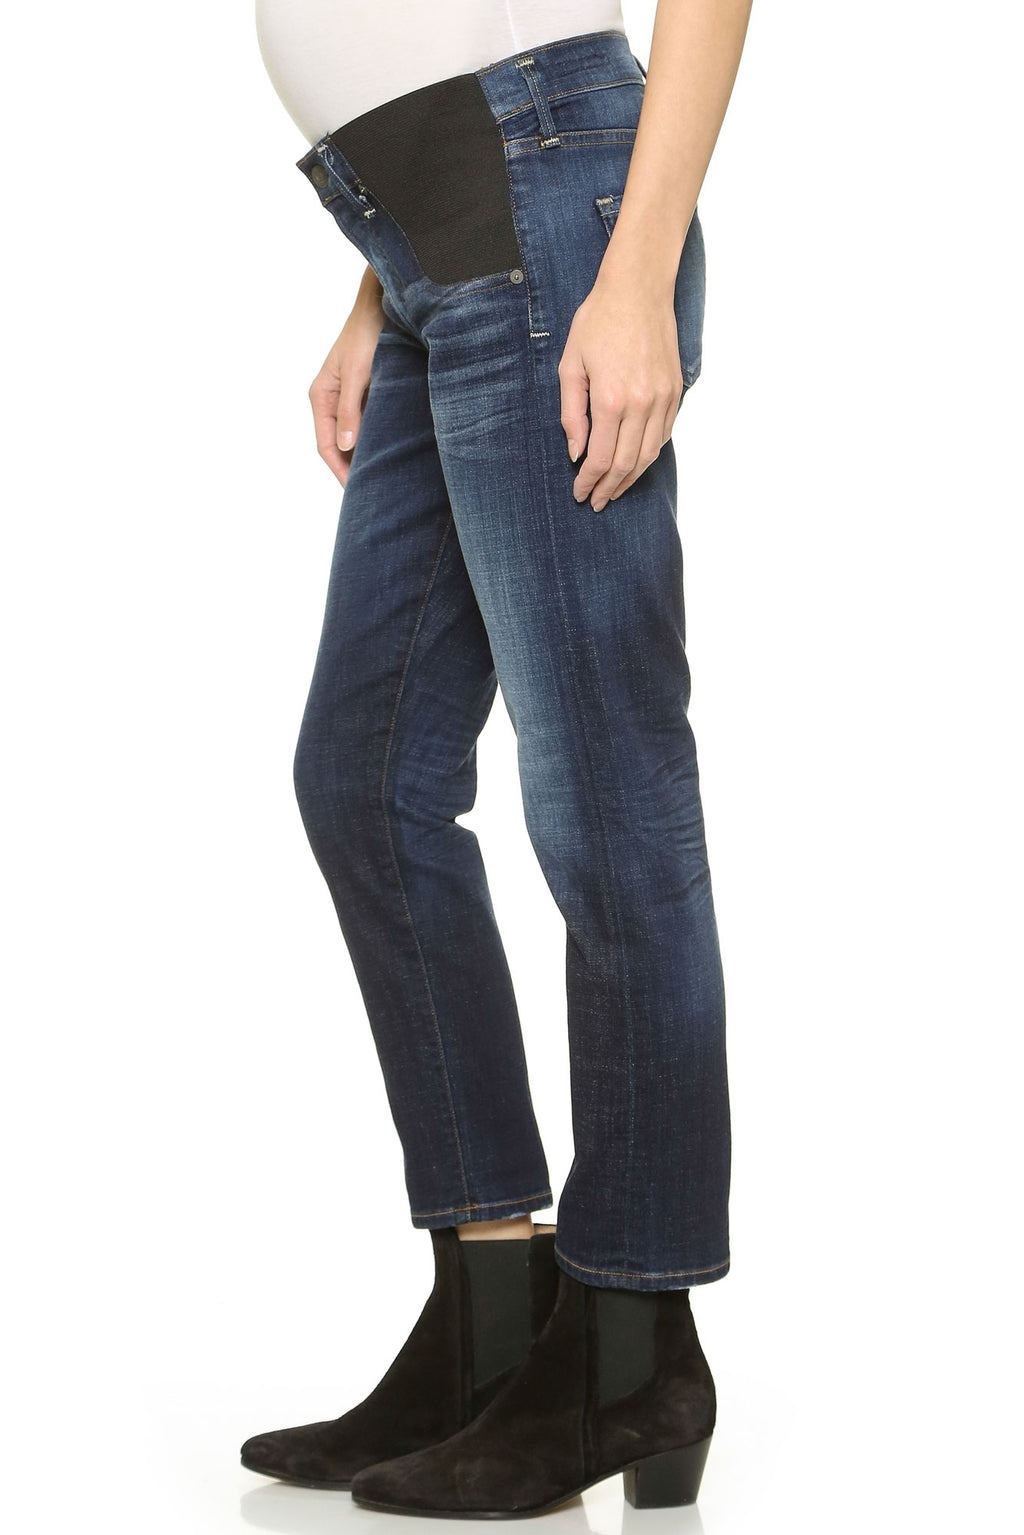 Citizen's of Humanity Emerson Maternity Boyfriend Jeans